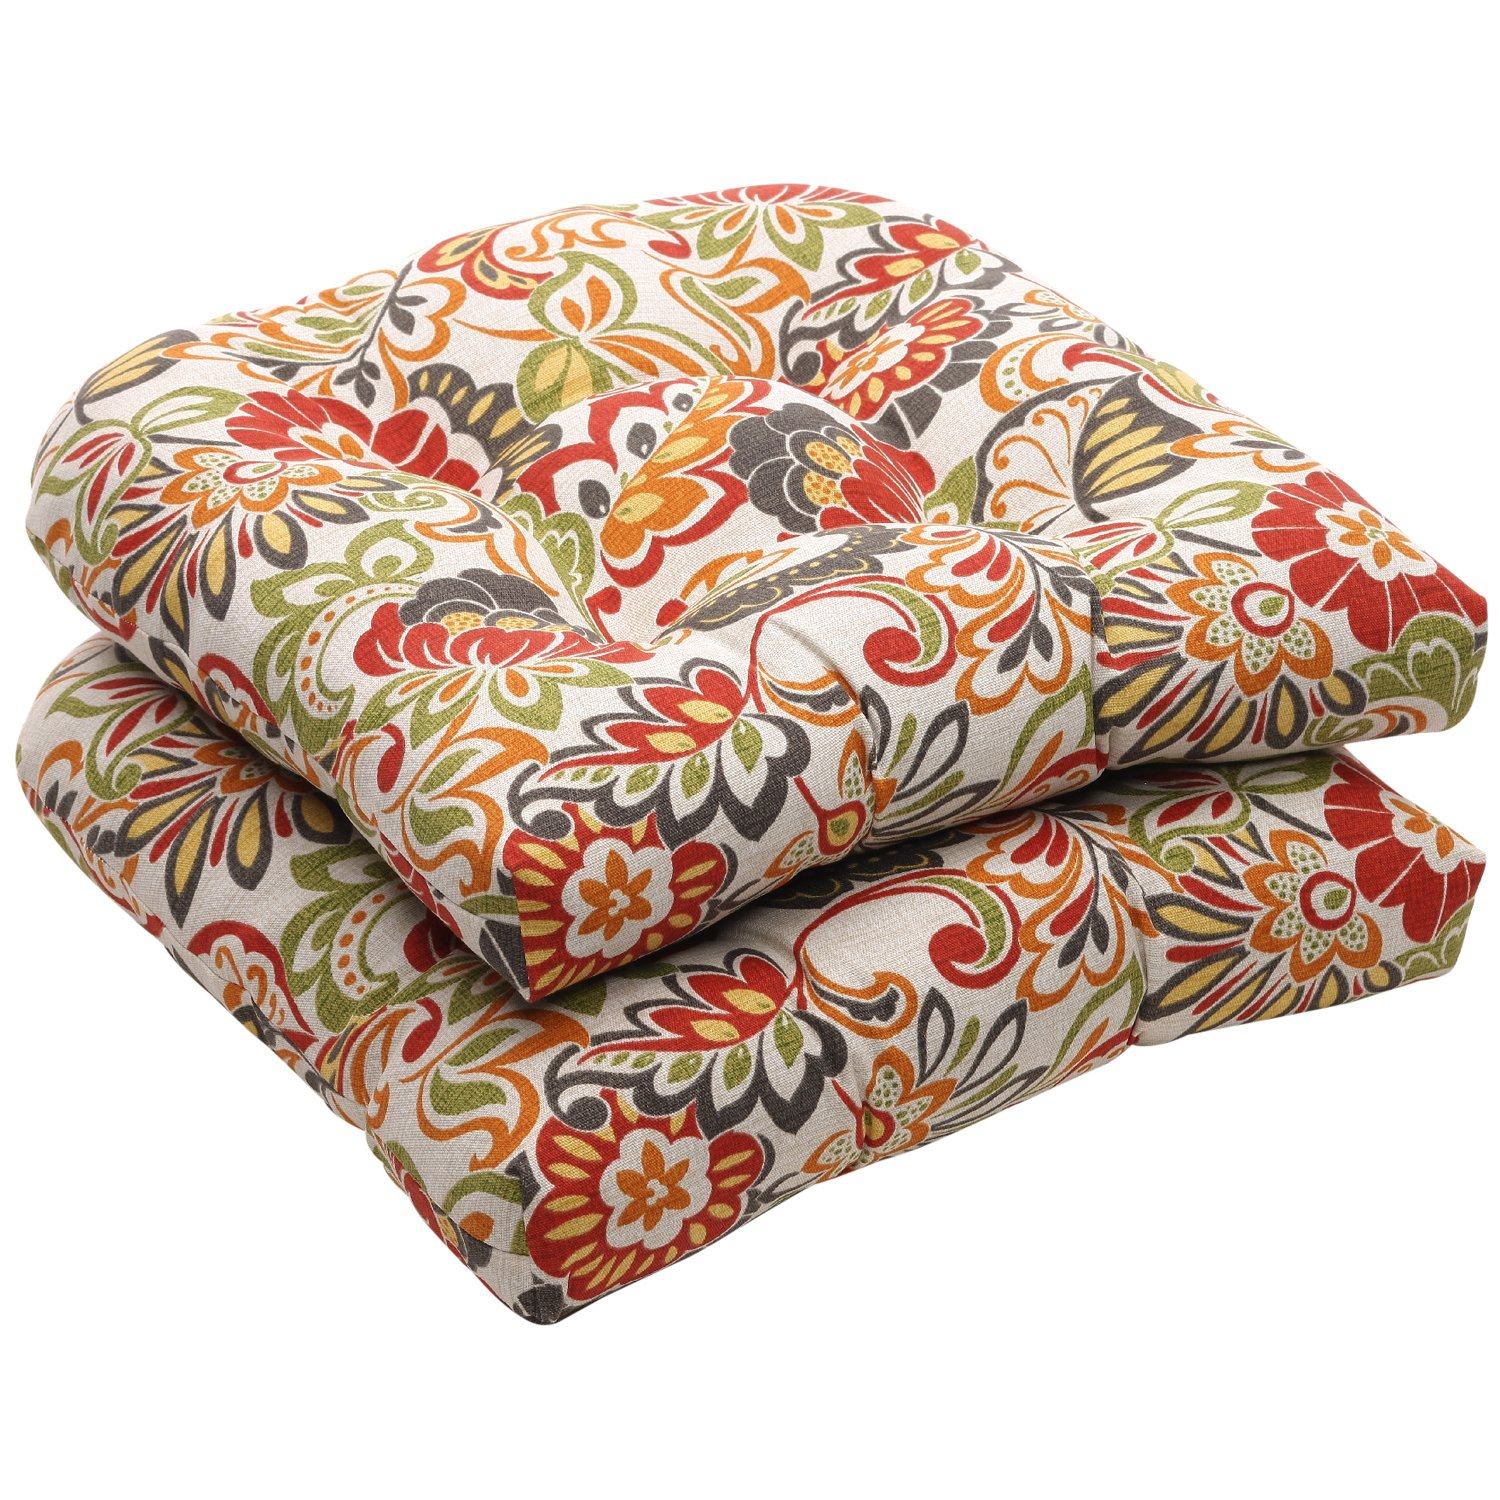 Amazon com  Pillow Perfect Indoor Outdoor Multicolored Modern Floral Wicker  Seat Cushions  2 Pack  Home   KitchenAmazon com  Pillow Perfect Indoor Outdoor Multicolored Modern  . Outdoor Cushions For Lounge Chairs. Home Design Ideas